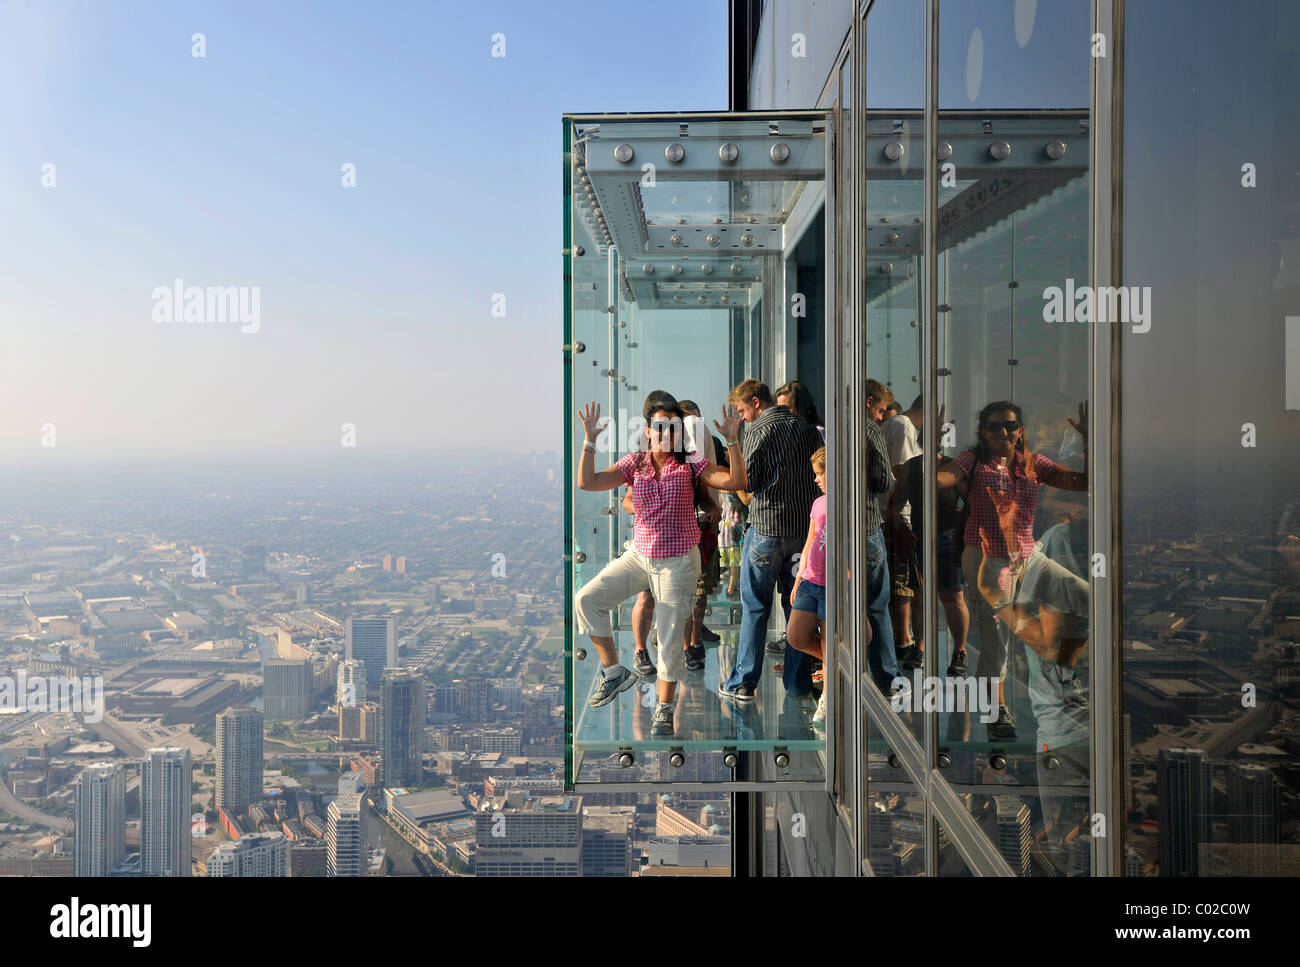 Visitors to the new 412-meter high observation deck Skydeck, Willis Tower, formerly named Sears Tower, Chicago, - Stock Image